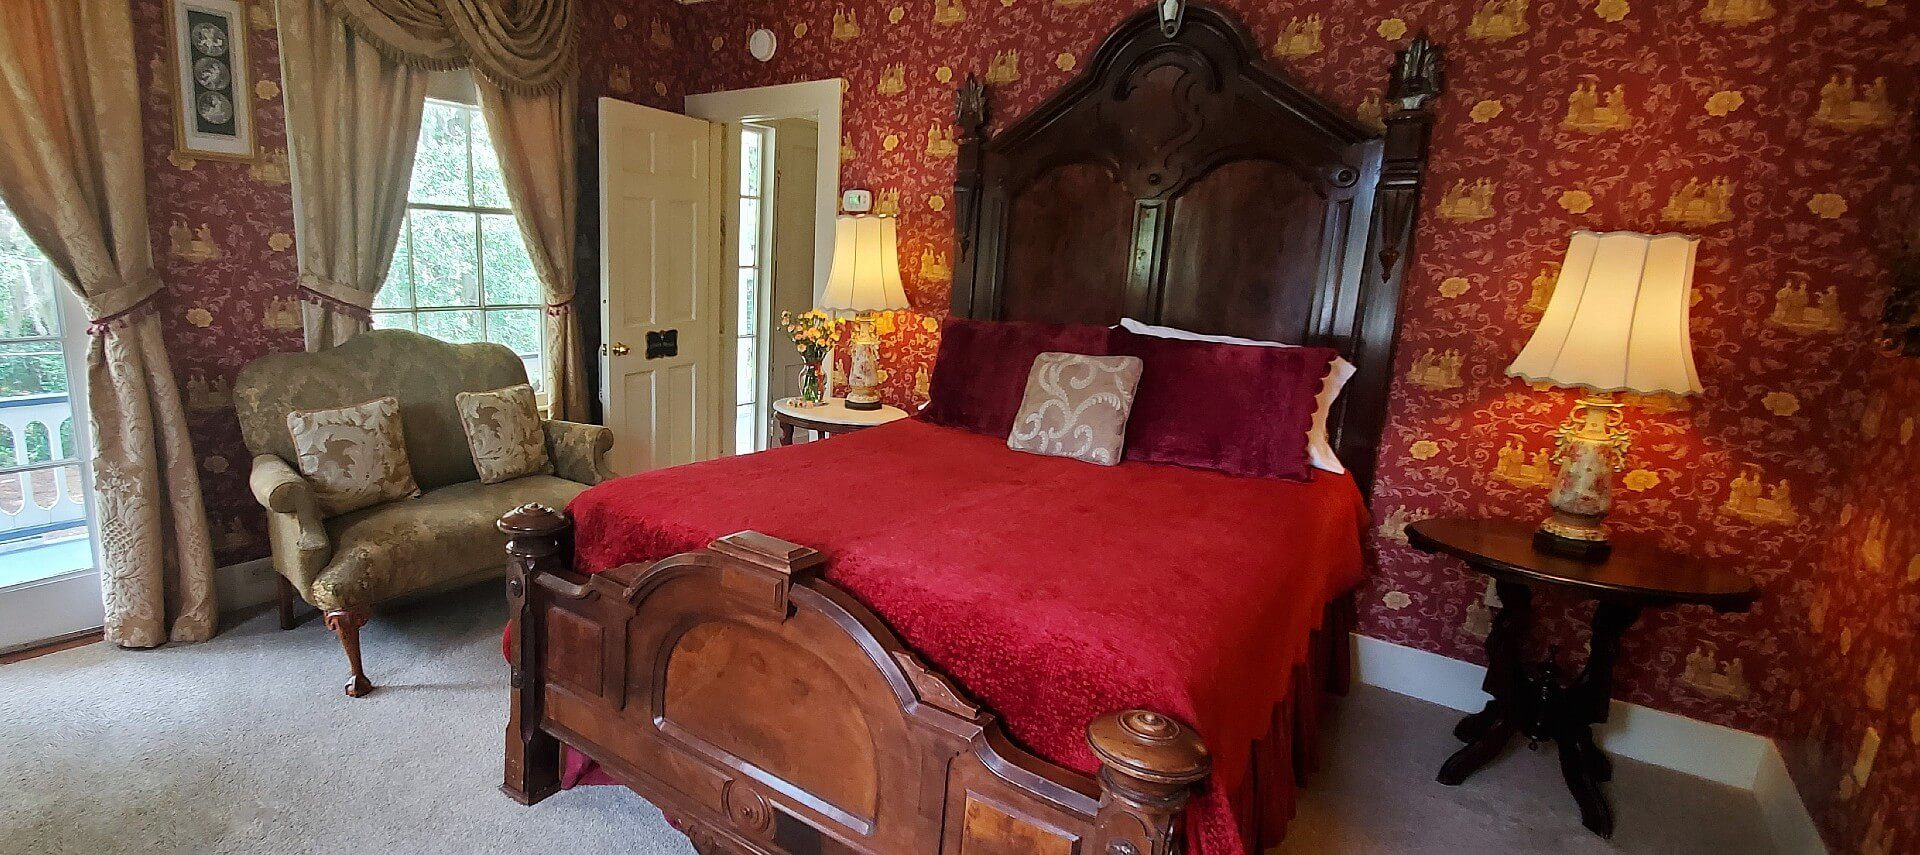 Stunning mahogany queen bed in room with red and yellow ornate wallpaper, loveseat and two bright windows